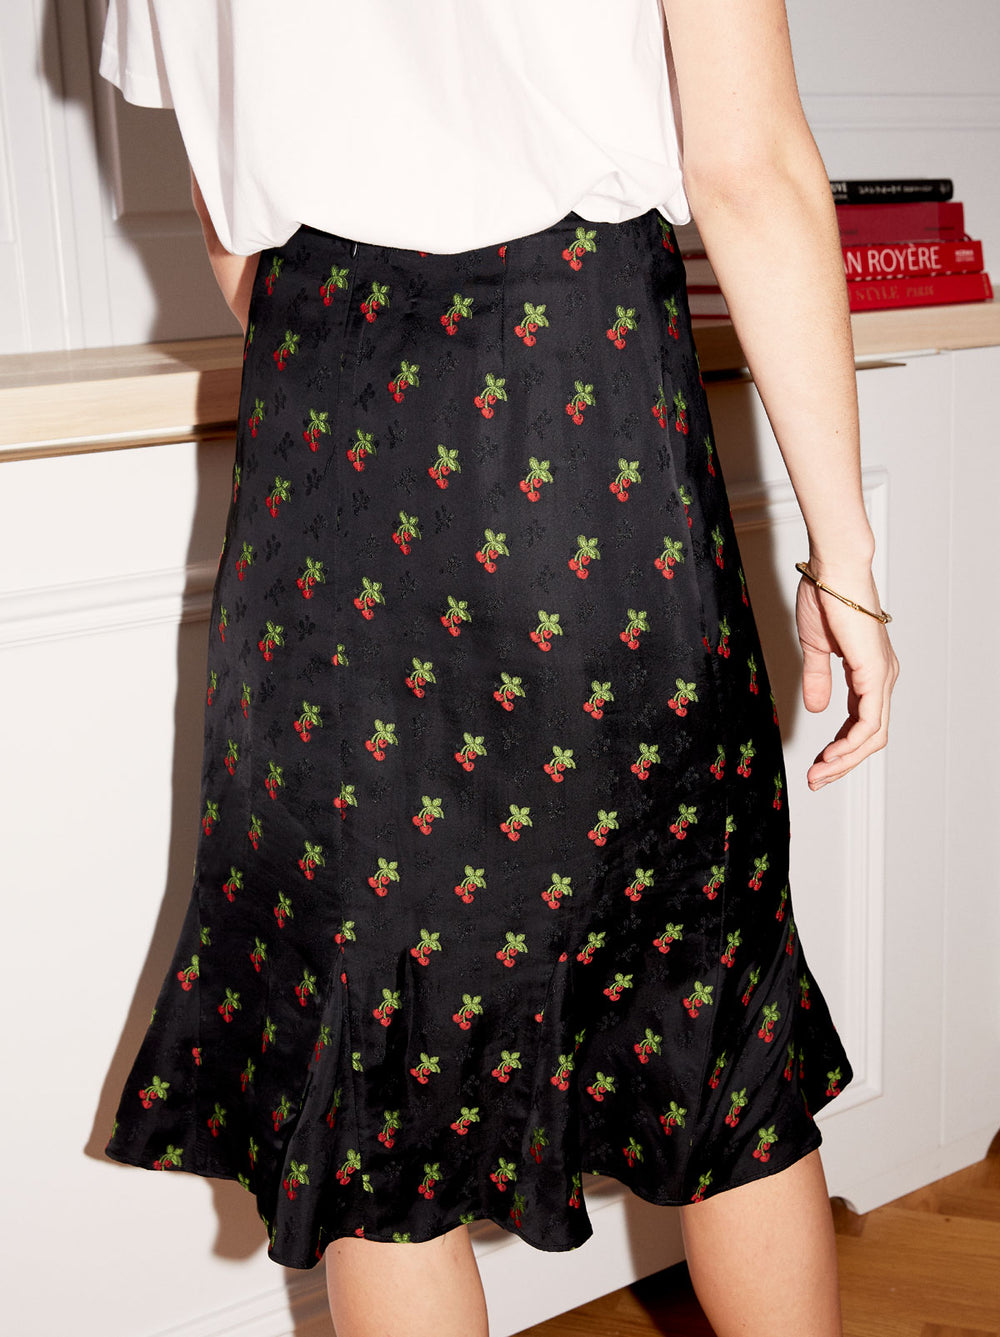 Lois Black Cherry Print Flared Skirt by KITRI Studio